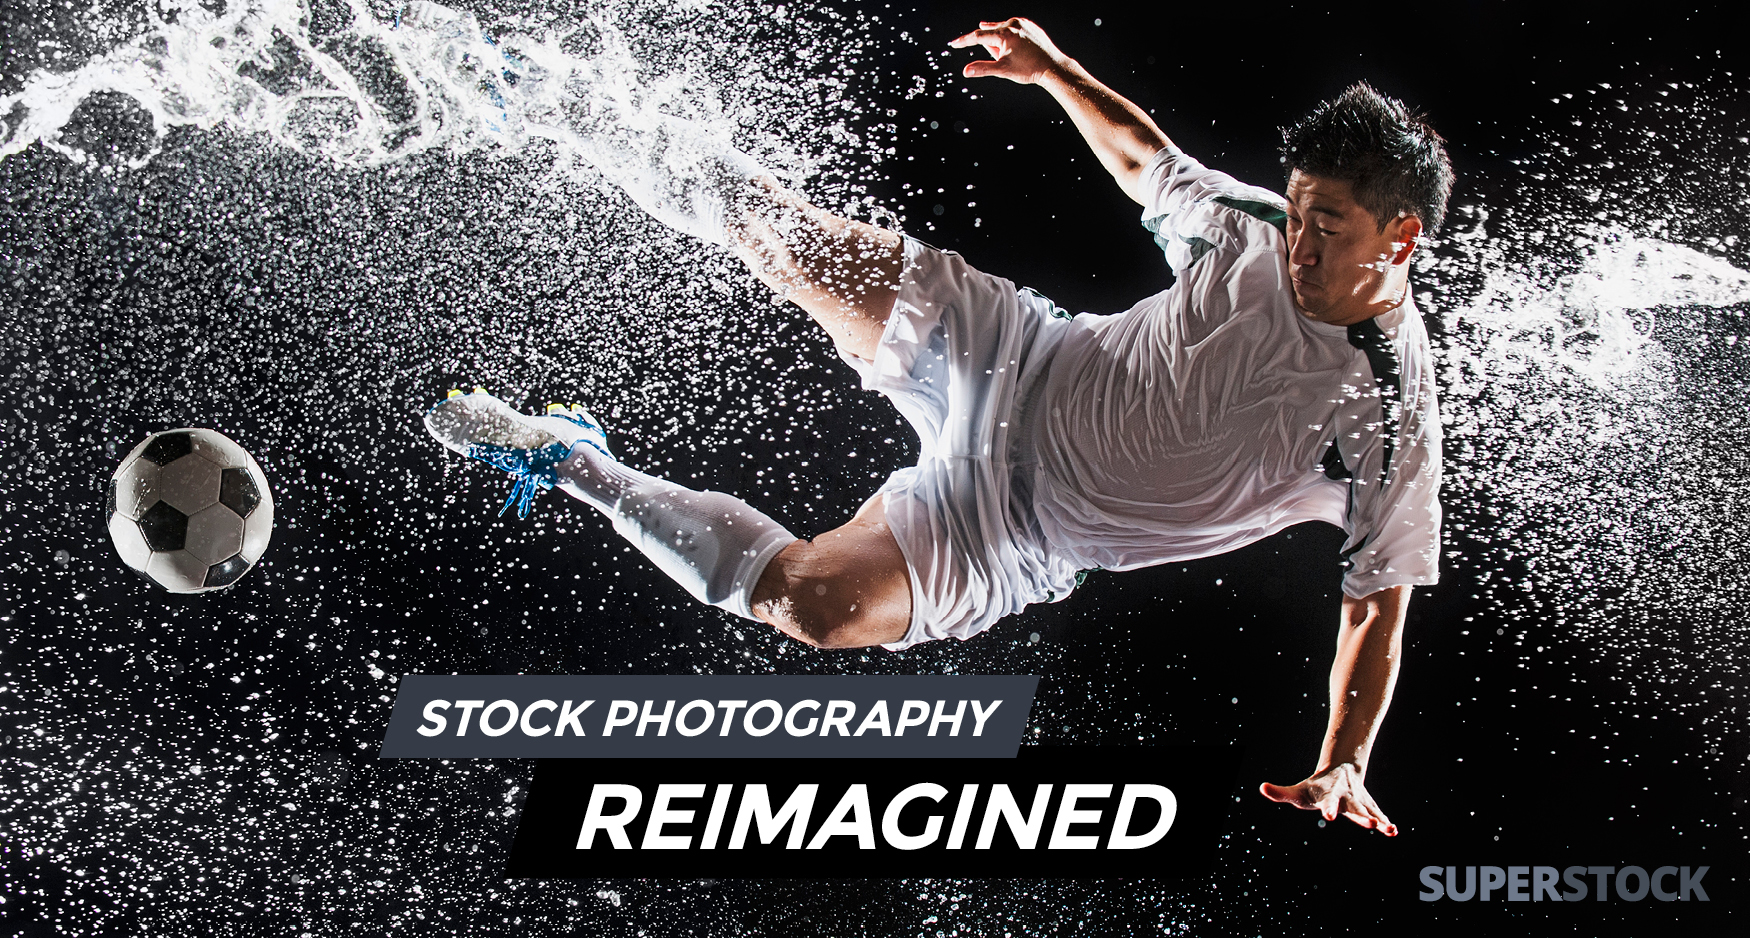 SS Slide 1 - SUPERSTOCK - STOCK PHOTOGRAPHY REIMAGINED CAMPAIGN